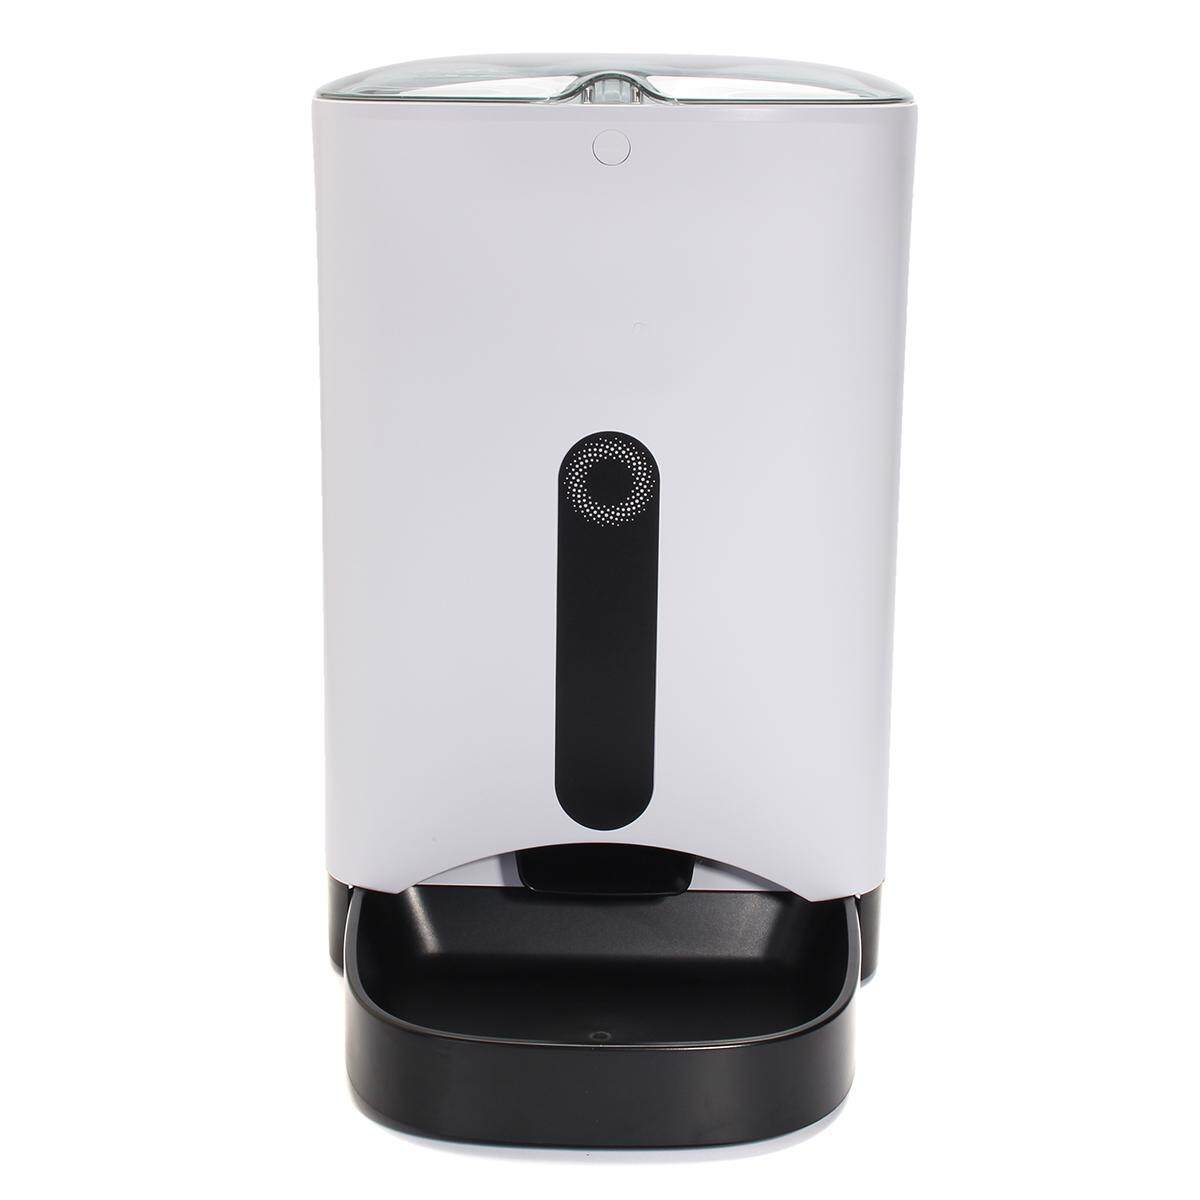 Automatic Pet Feeder For Cat Dog Ios Android App Wifi Cam Timer Food Dispenser  Feeder Without Camera By Moonbeam.